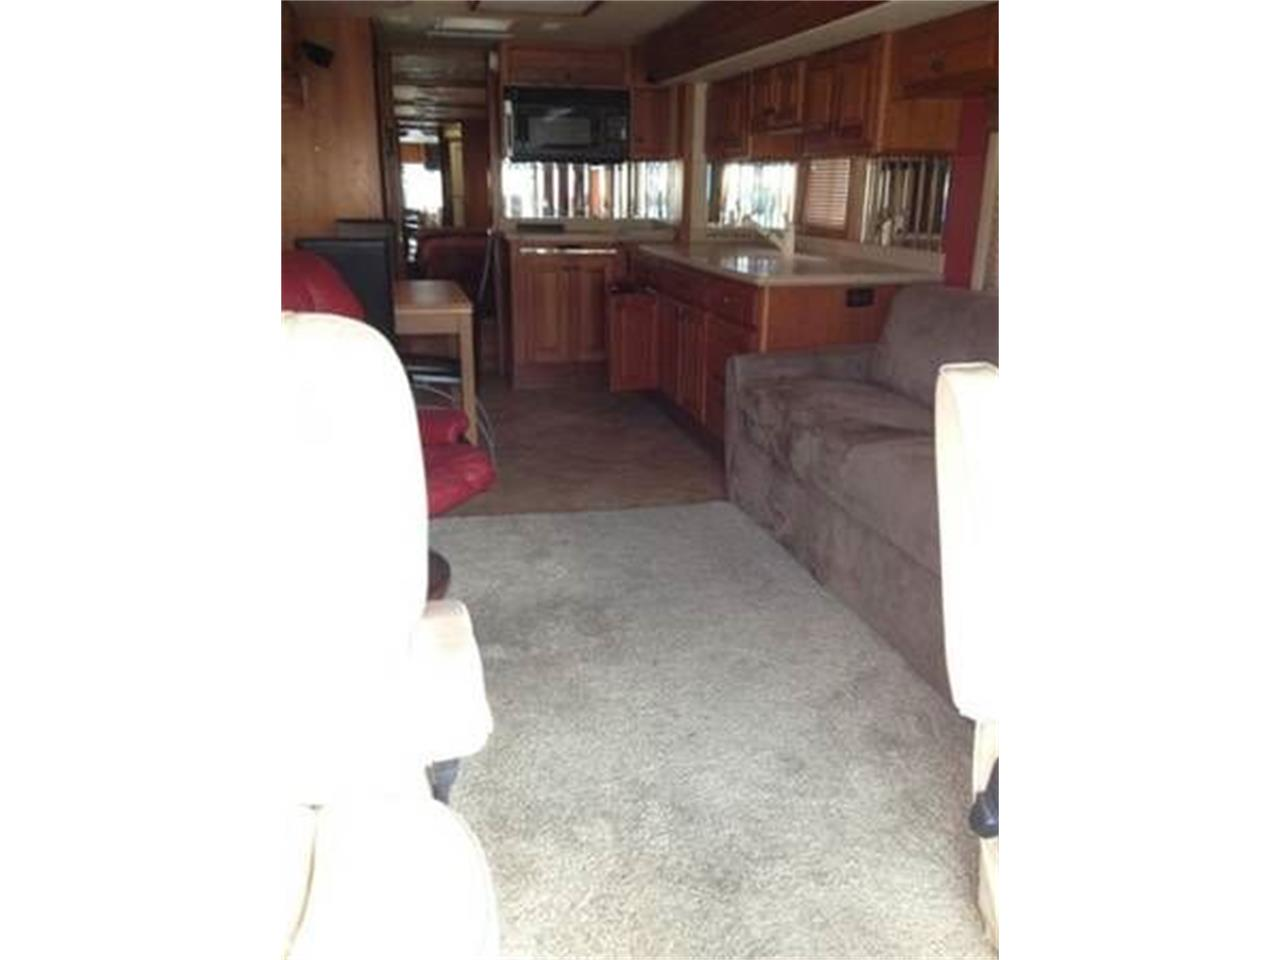 2002 Country Coach Intrigue for sale in Cadillac, MI – photo 4